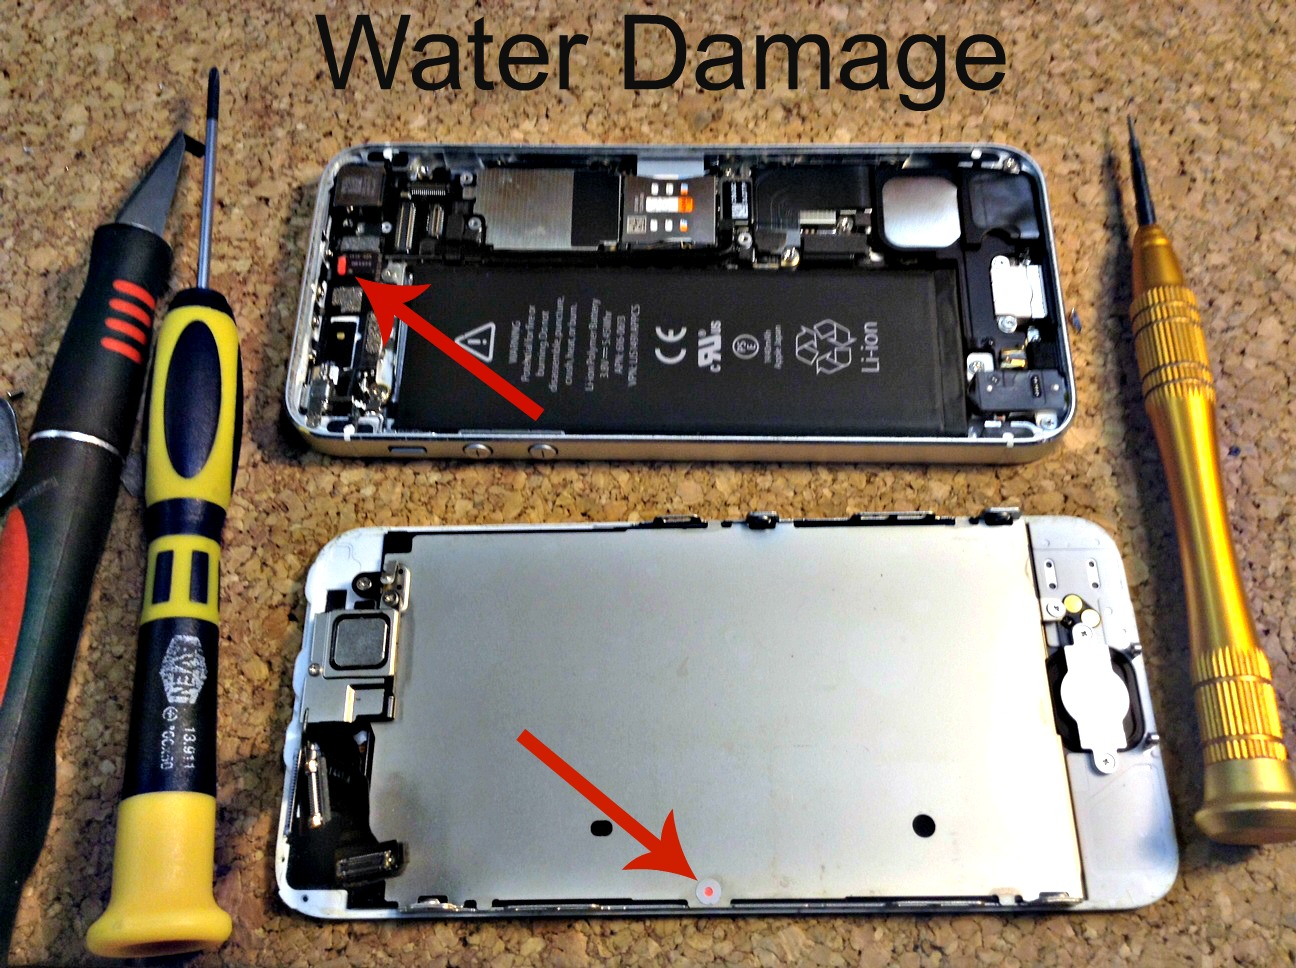 How to fix a water damage iPhone